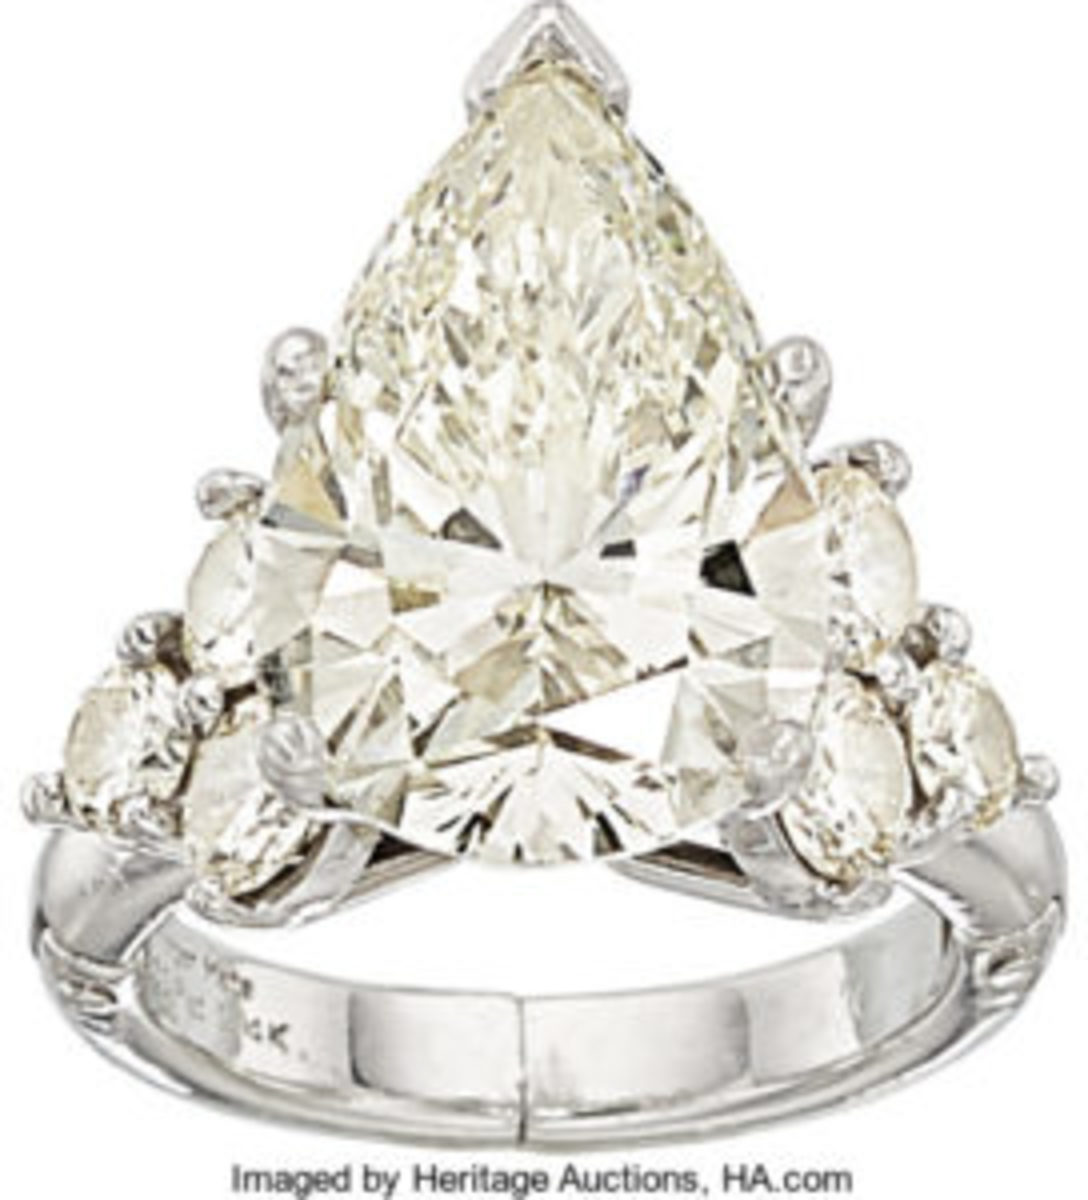 Pear-shaped diamond and platinum ring